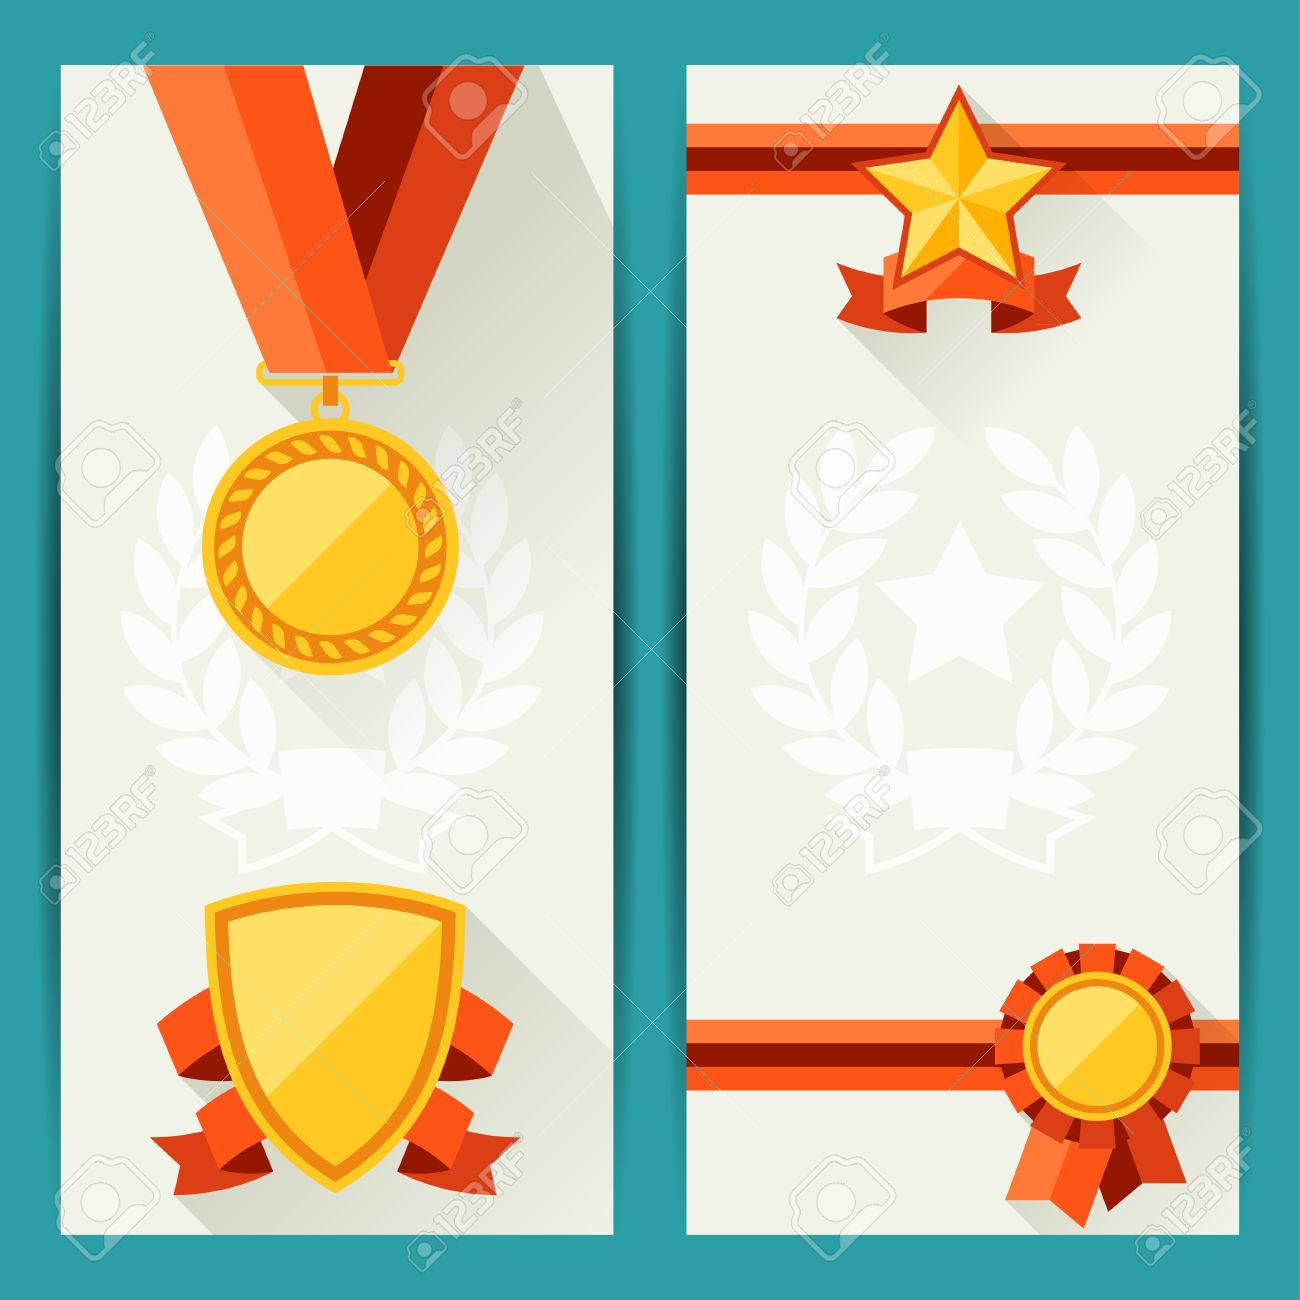 Certificate Templates With Awards In Flat Design Style Royalty Free ...